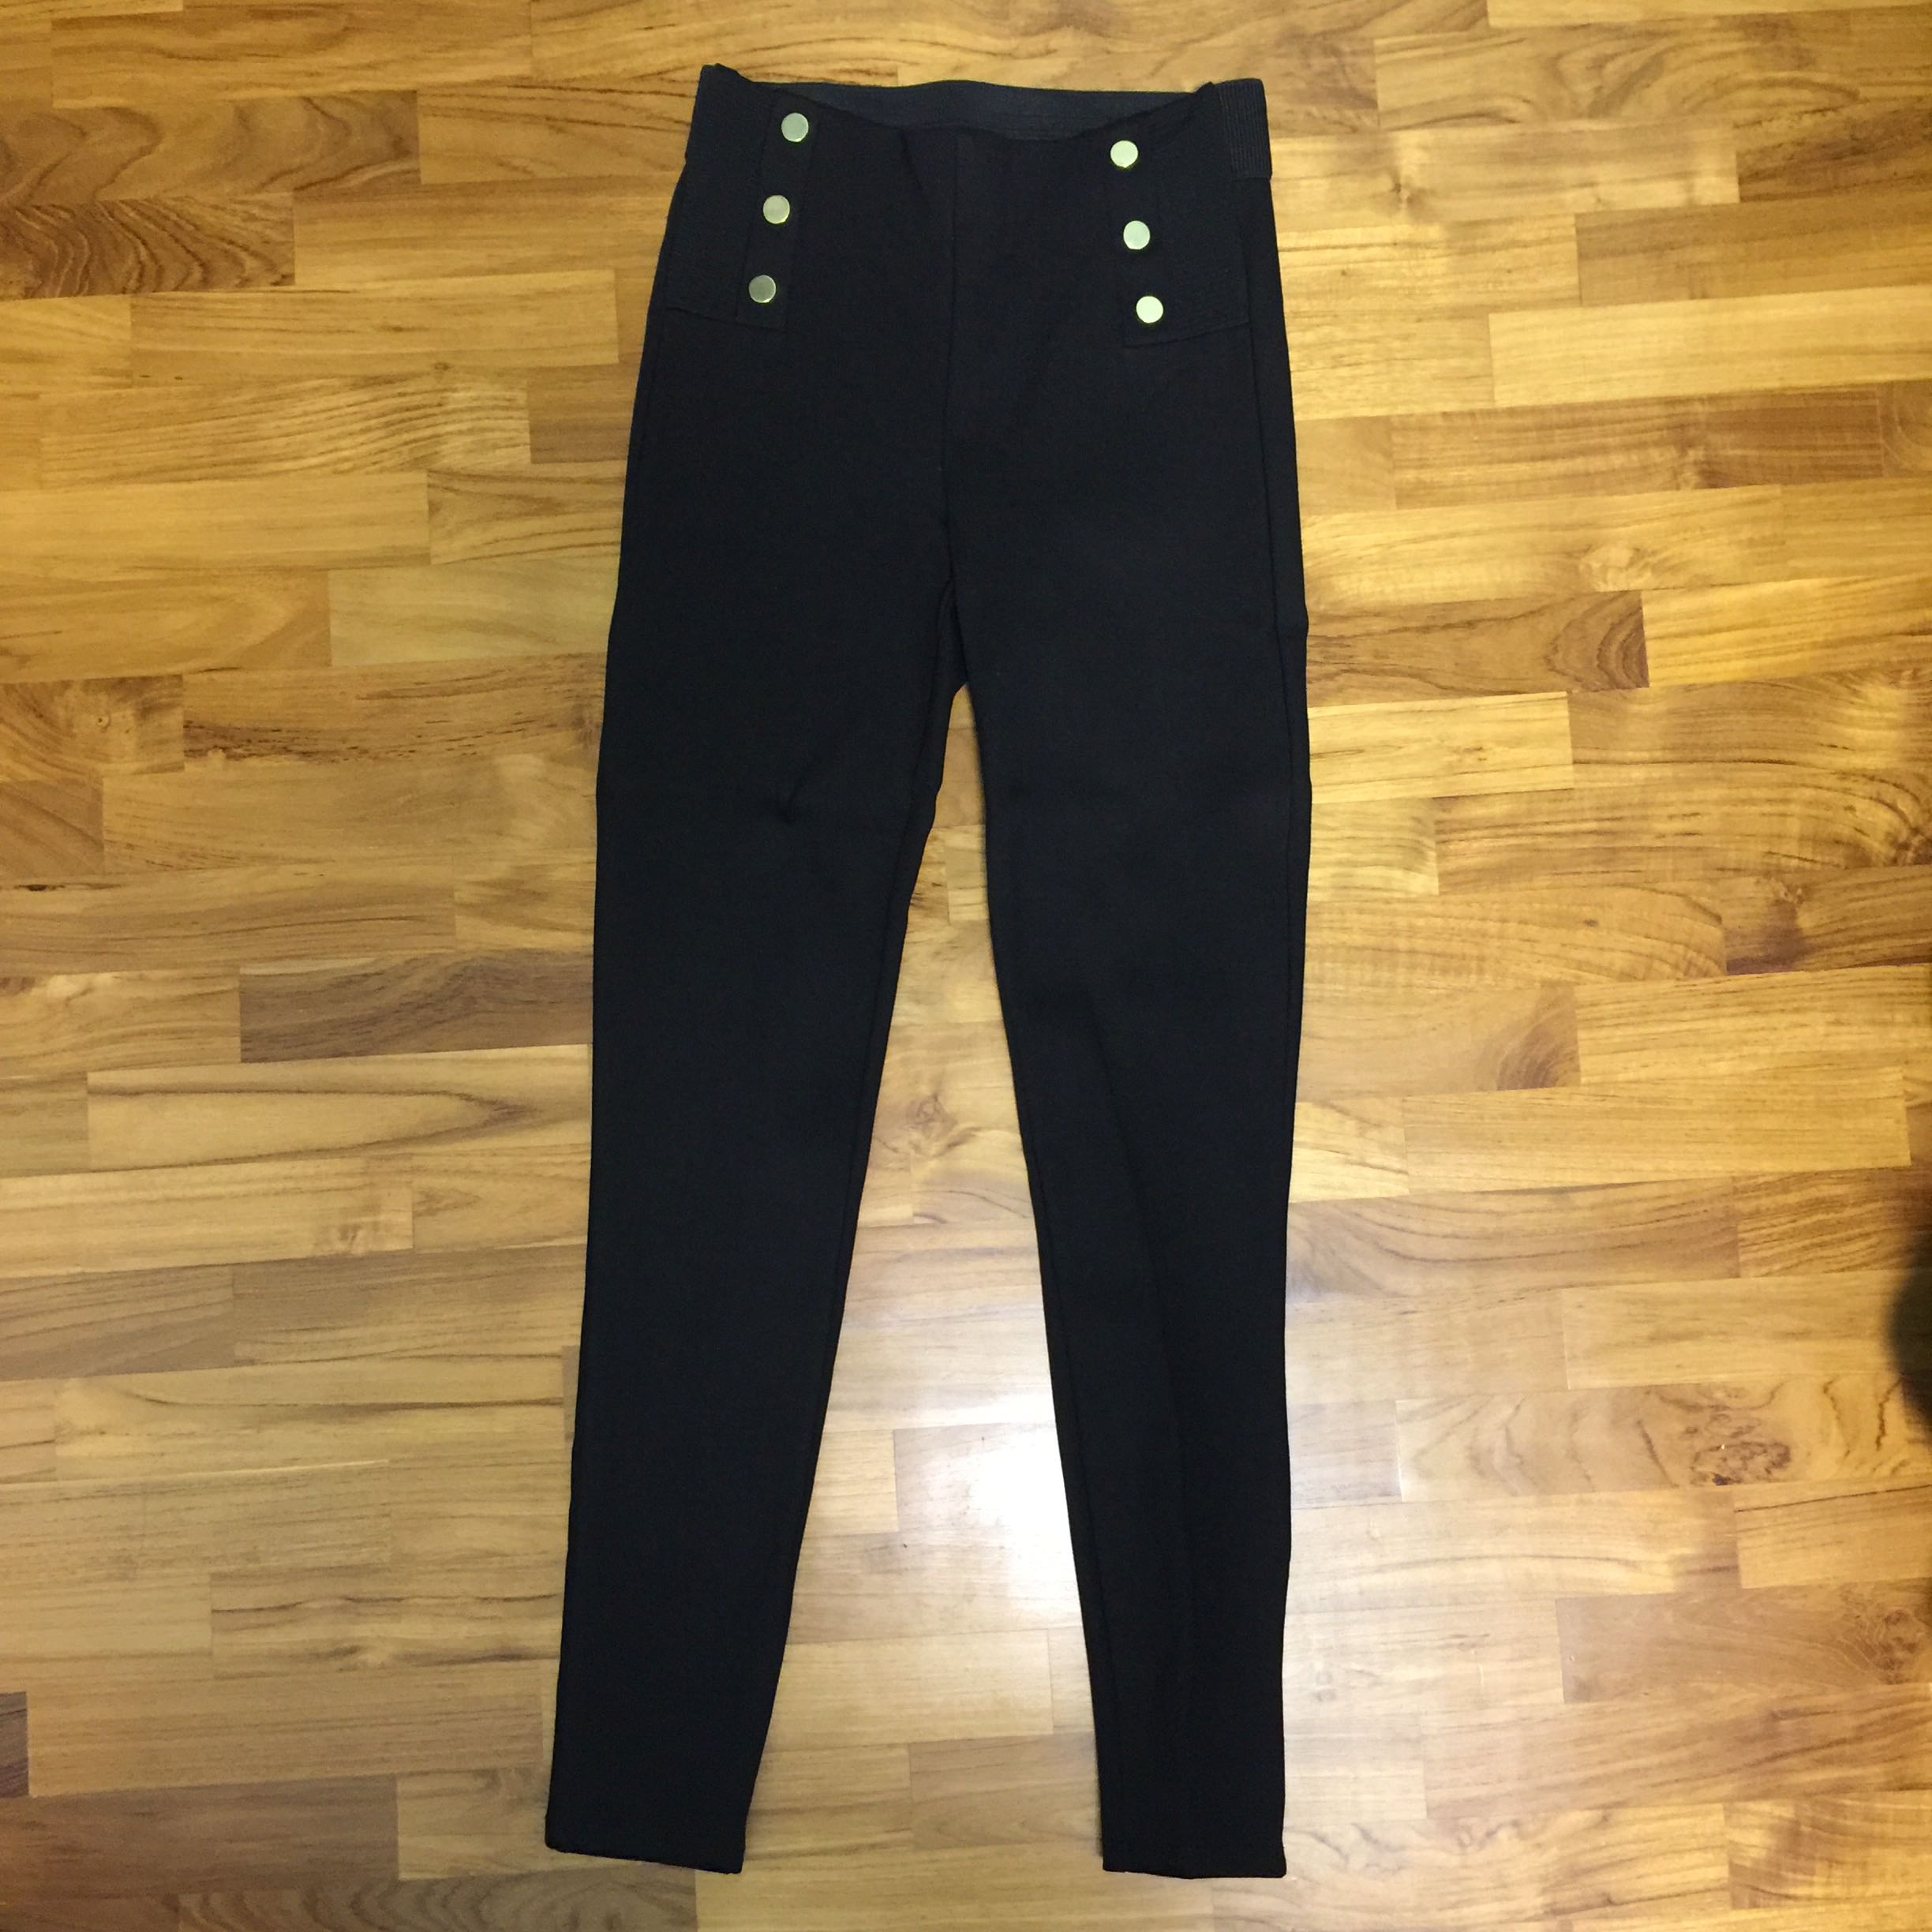 5ade8b99 Zara basic collection size s skinny black stretchy pants, Women's ...